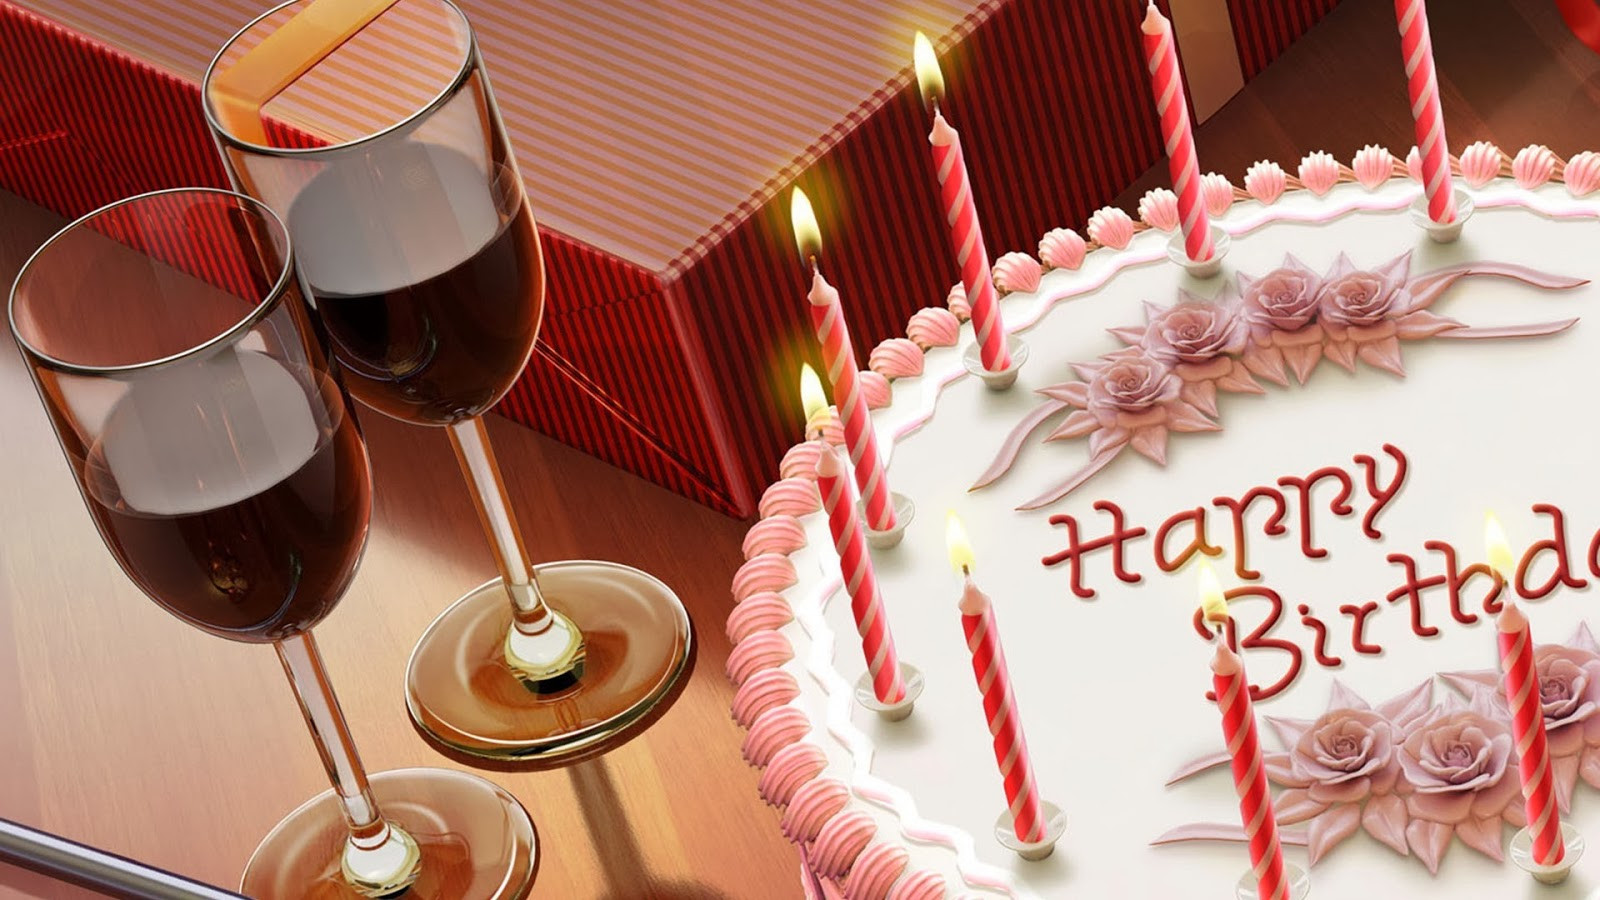 happy birthday wish picture download ; new-advance-happy-birthday-wishes-hd-images-free-todays-news-of-happy-birthday-wish-image-download